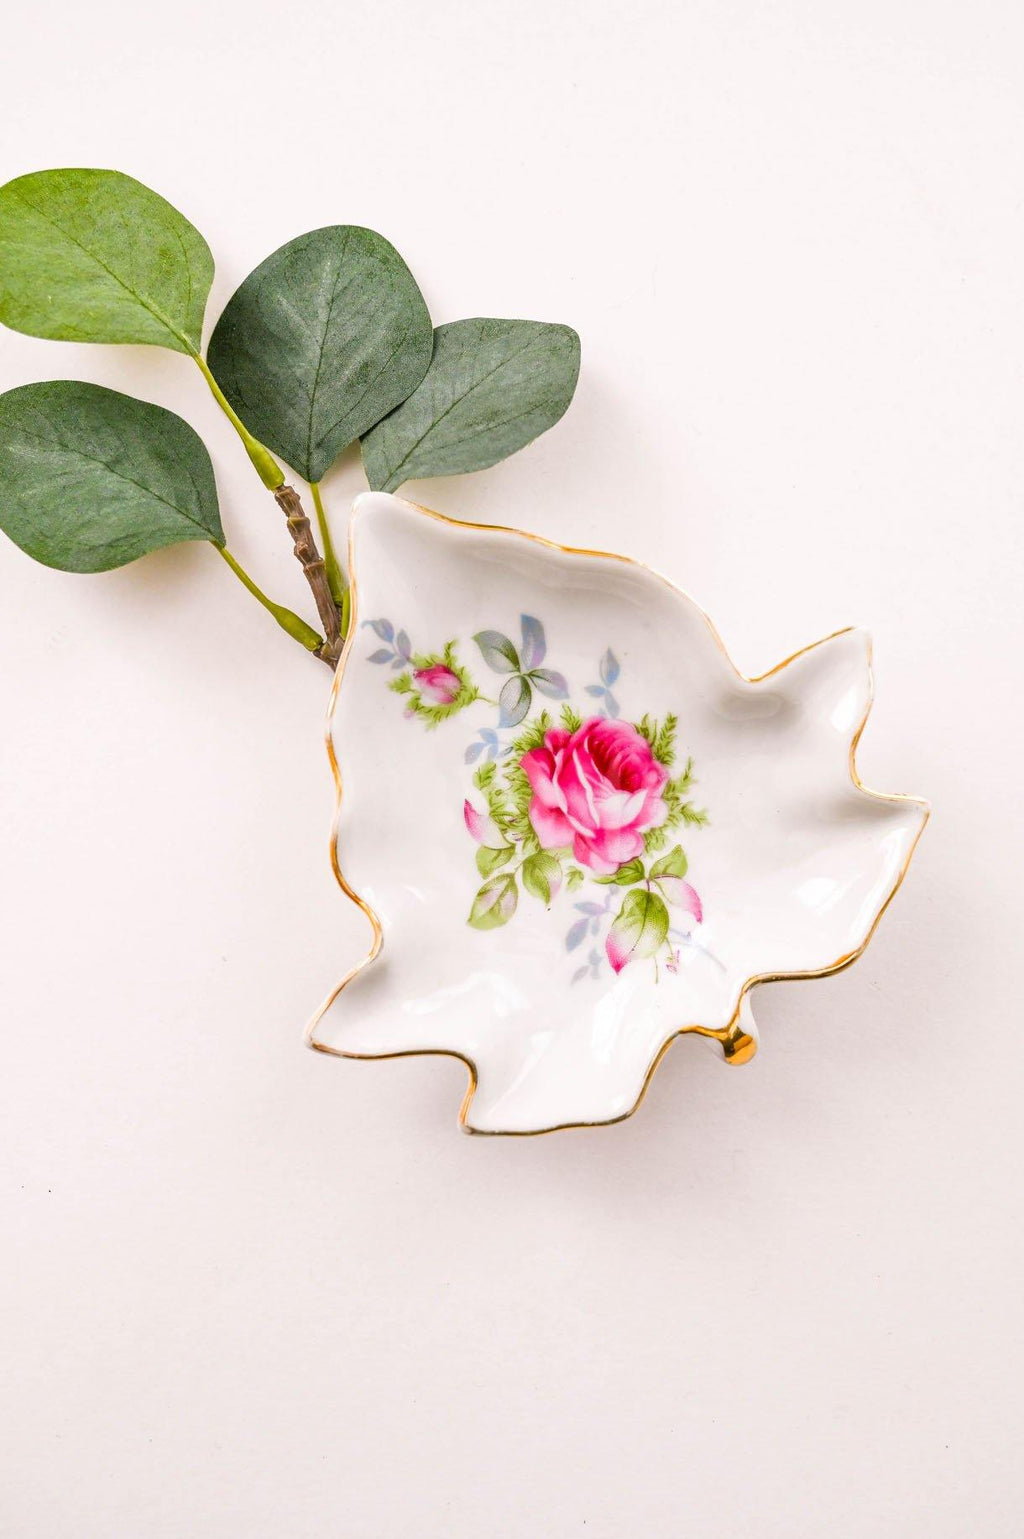 Medium Floral Leaf Trinket Dish